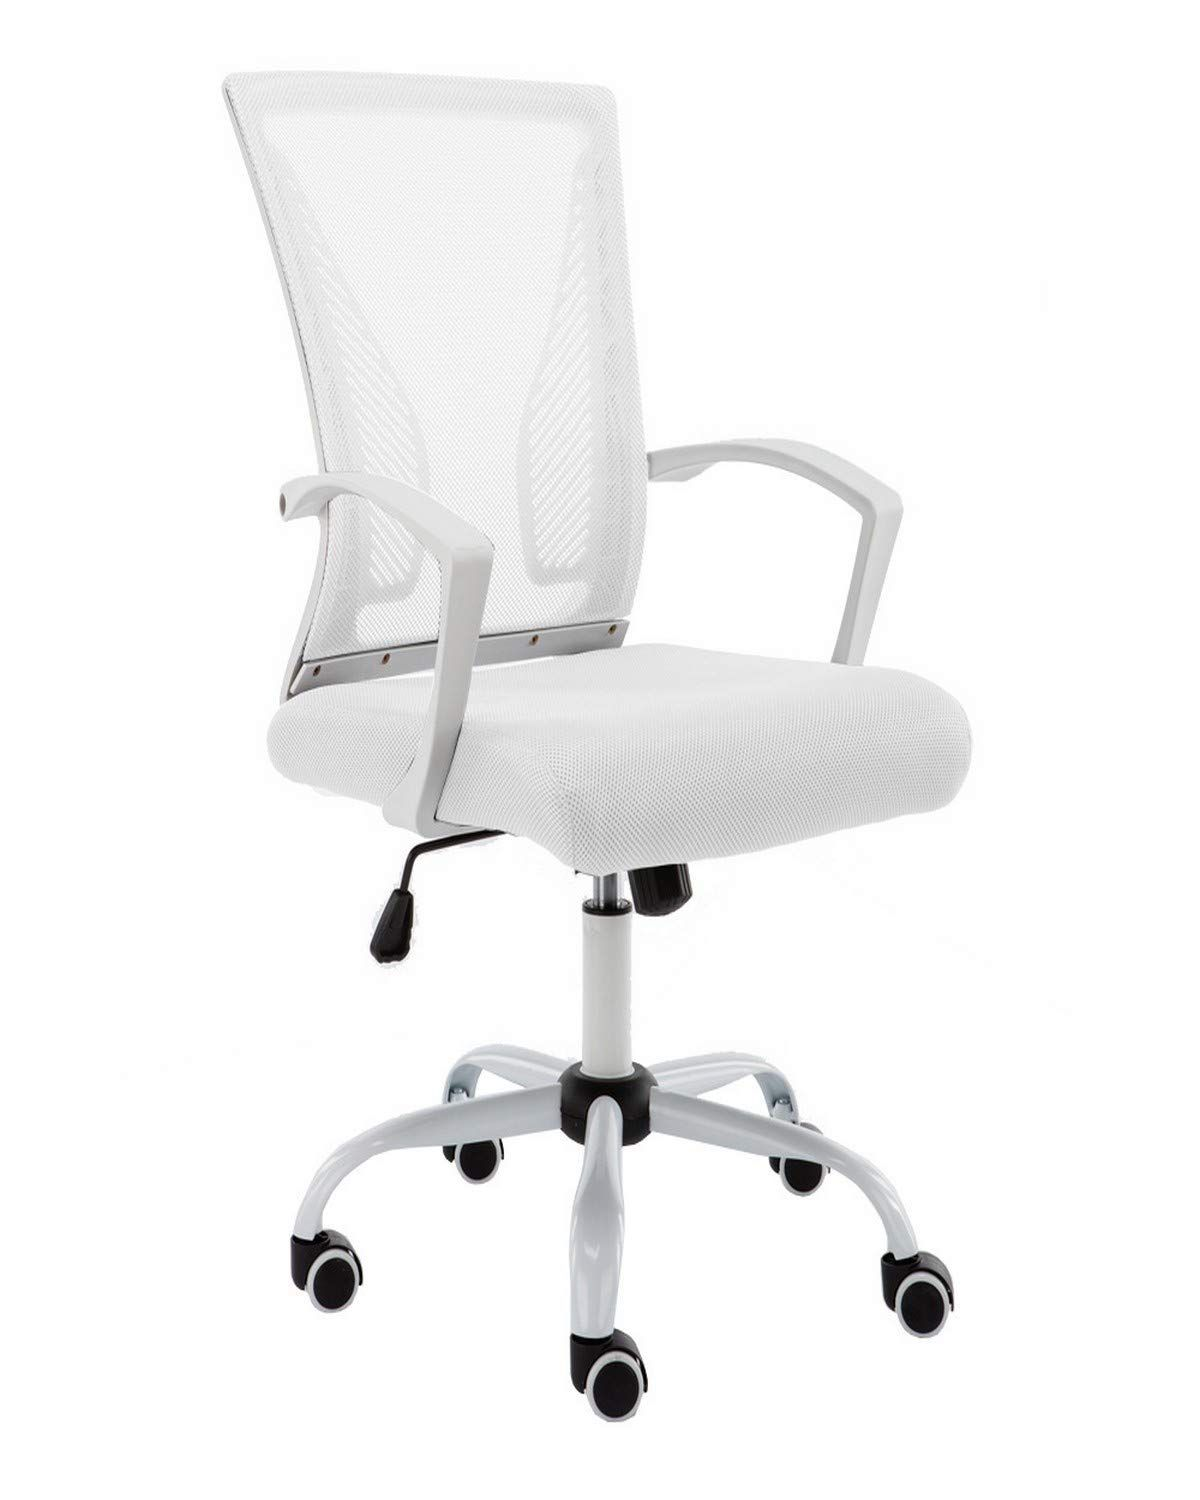 Modern Home Whwhite Zuna Mid Back Office Chair White White In 2020 Office Chairs Walmart Adjustable Office Chair Office Furniture Modern